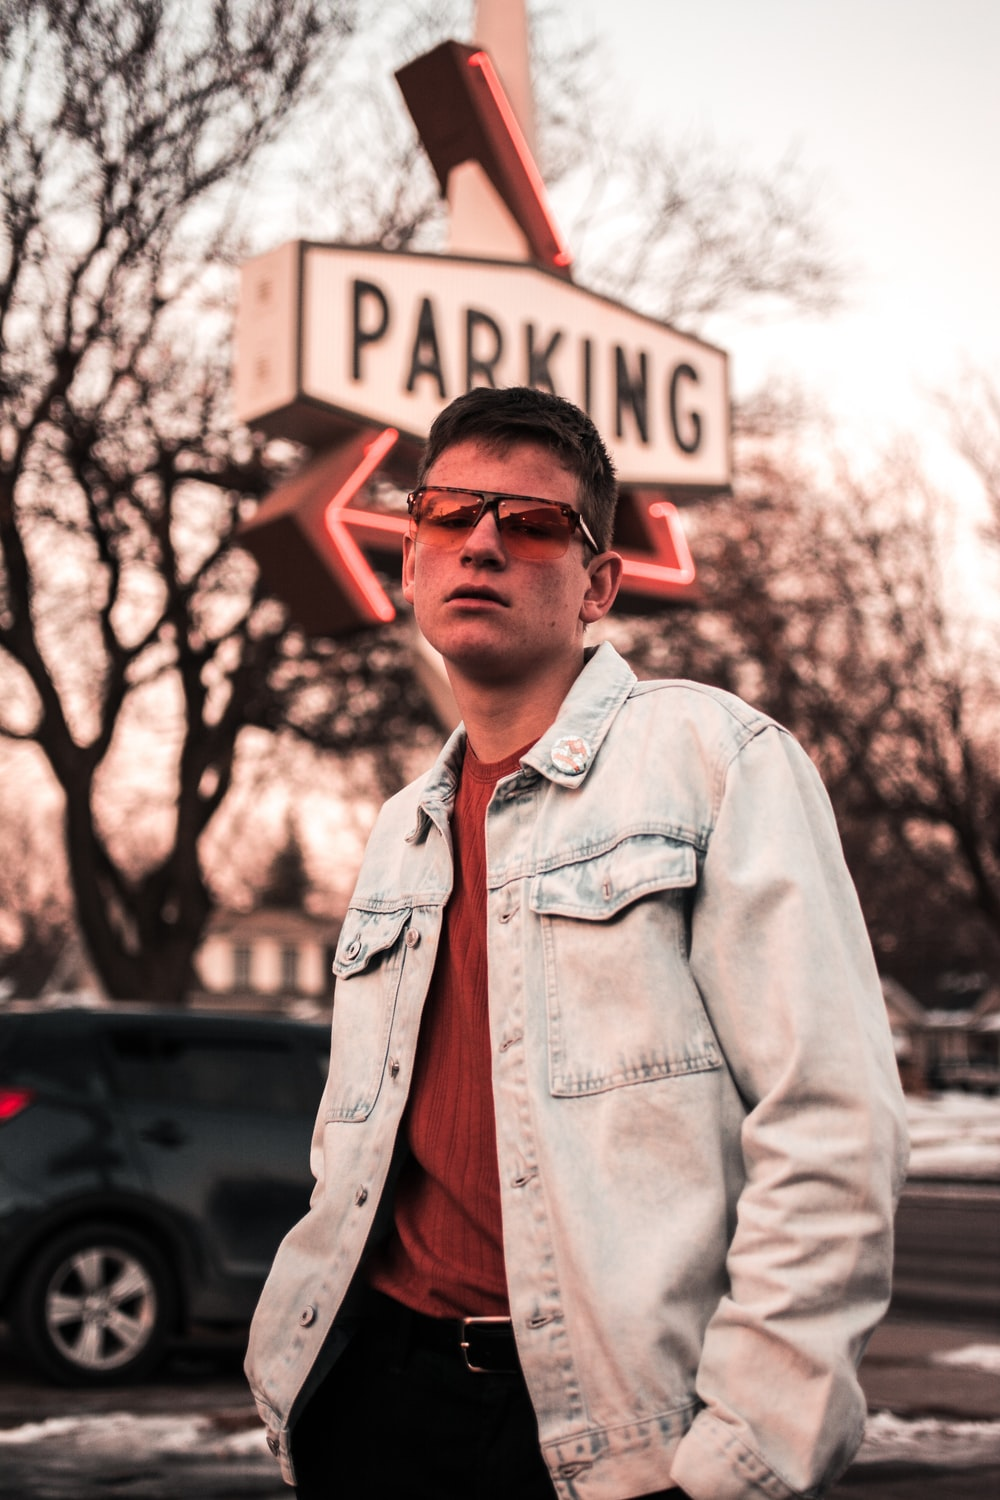 man standing in front of parking signage